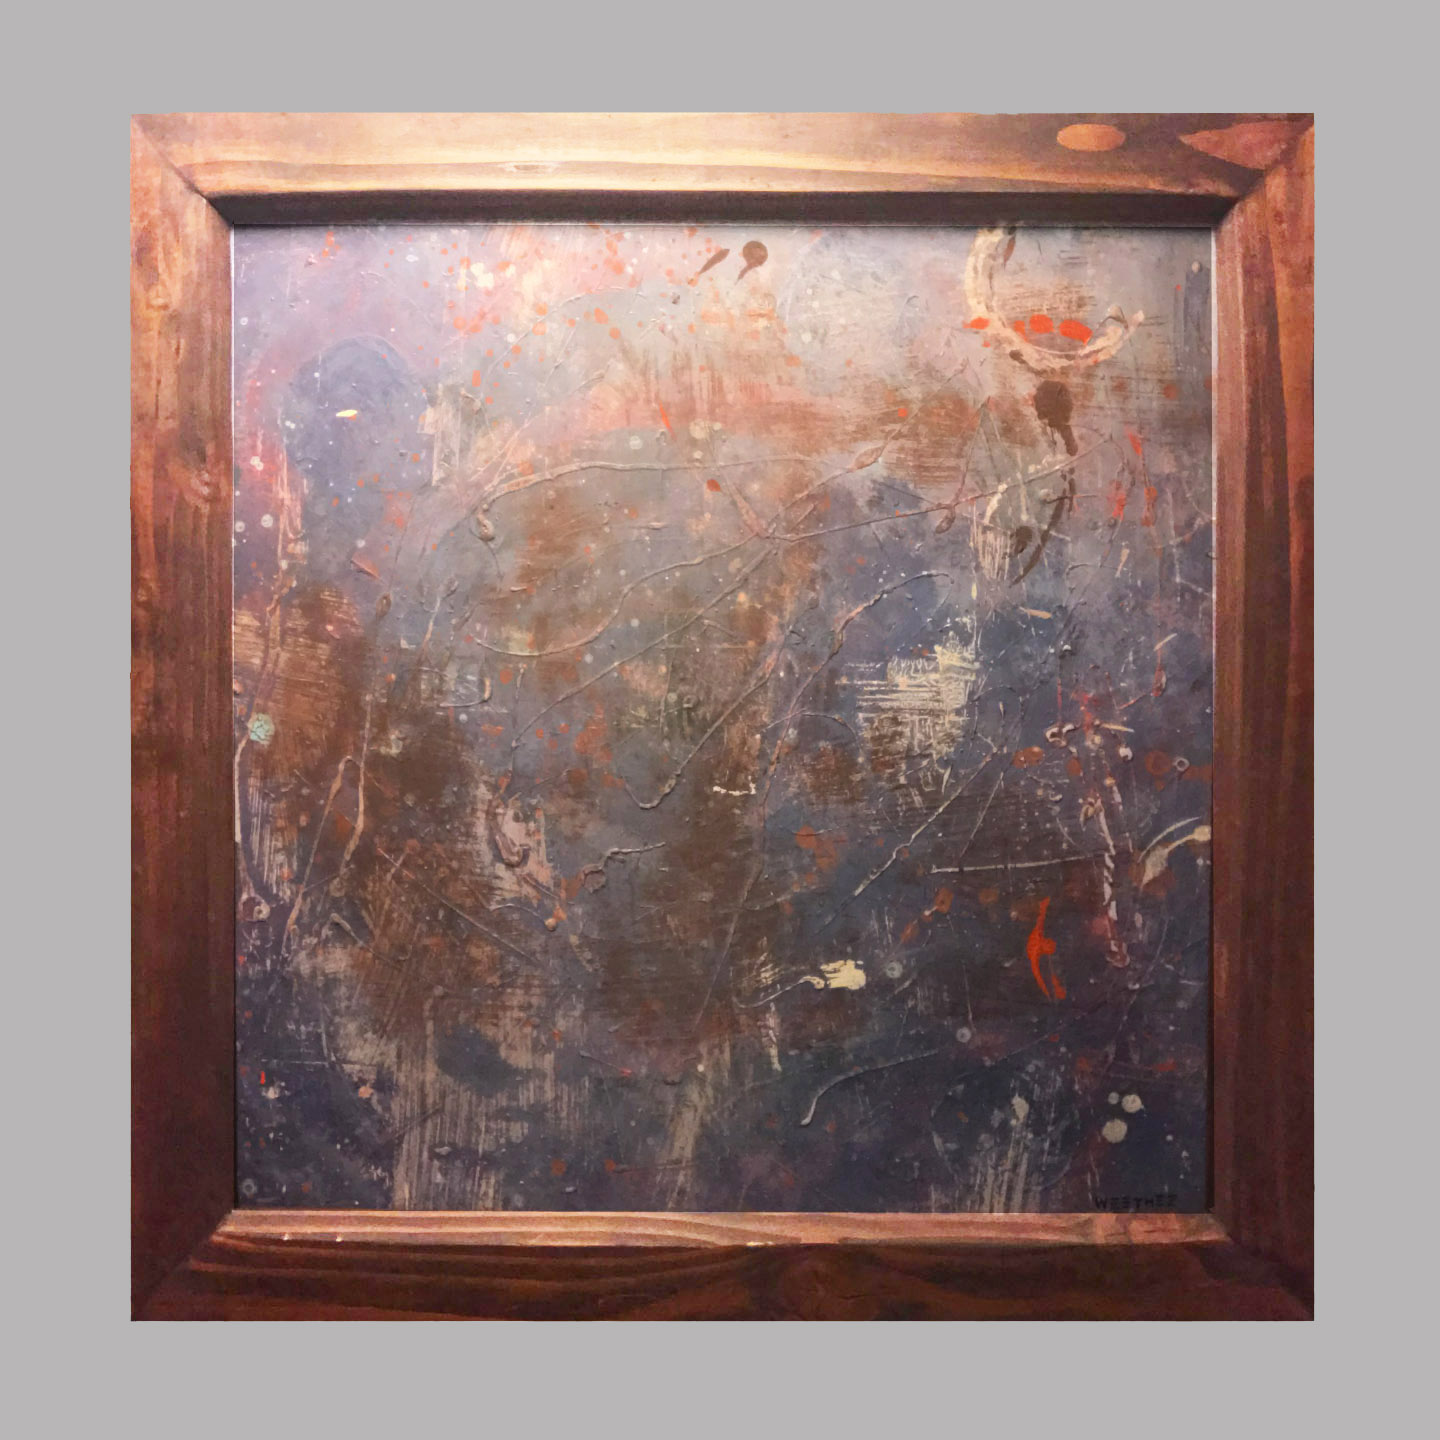 """Clouded 30""""x30"""" $70/wk"""